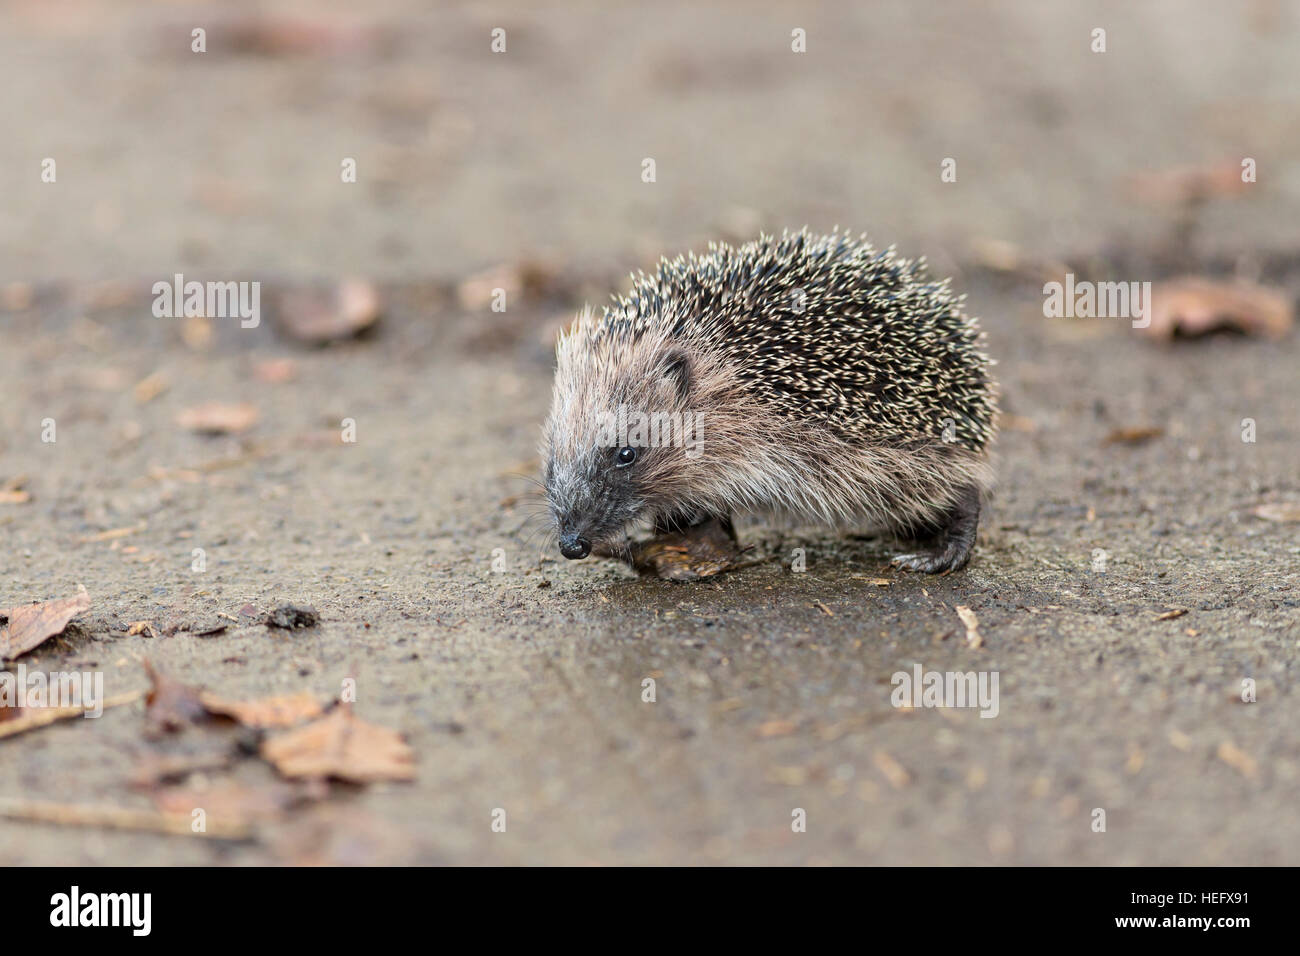 juvenile hedgehog walking - Stock Image